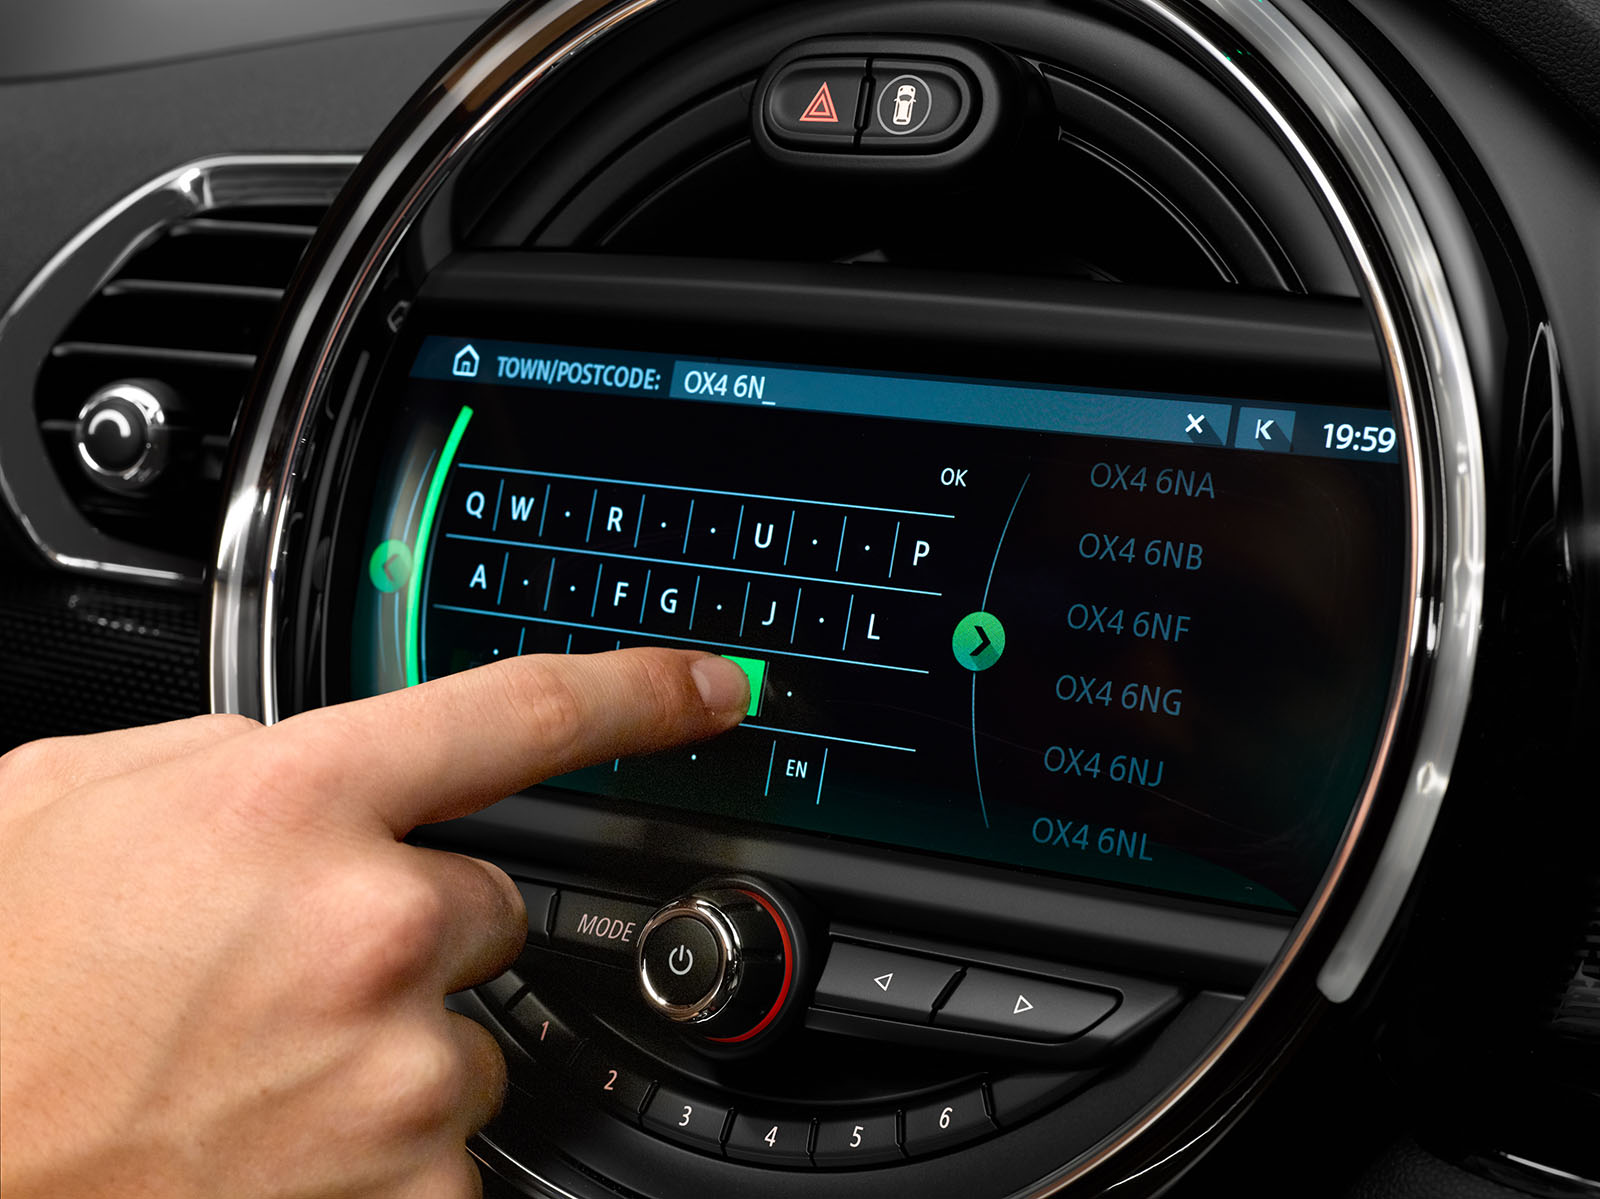 MINI's new touchscreen navigation